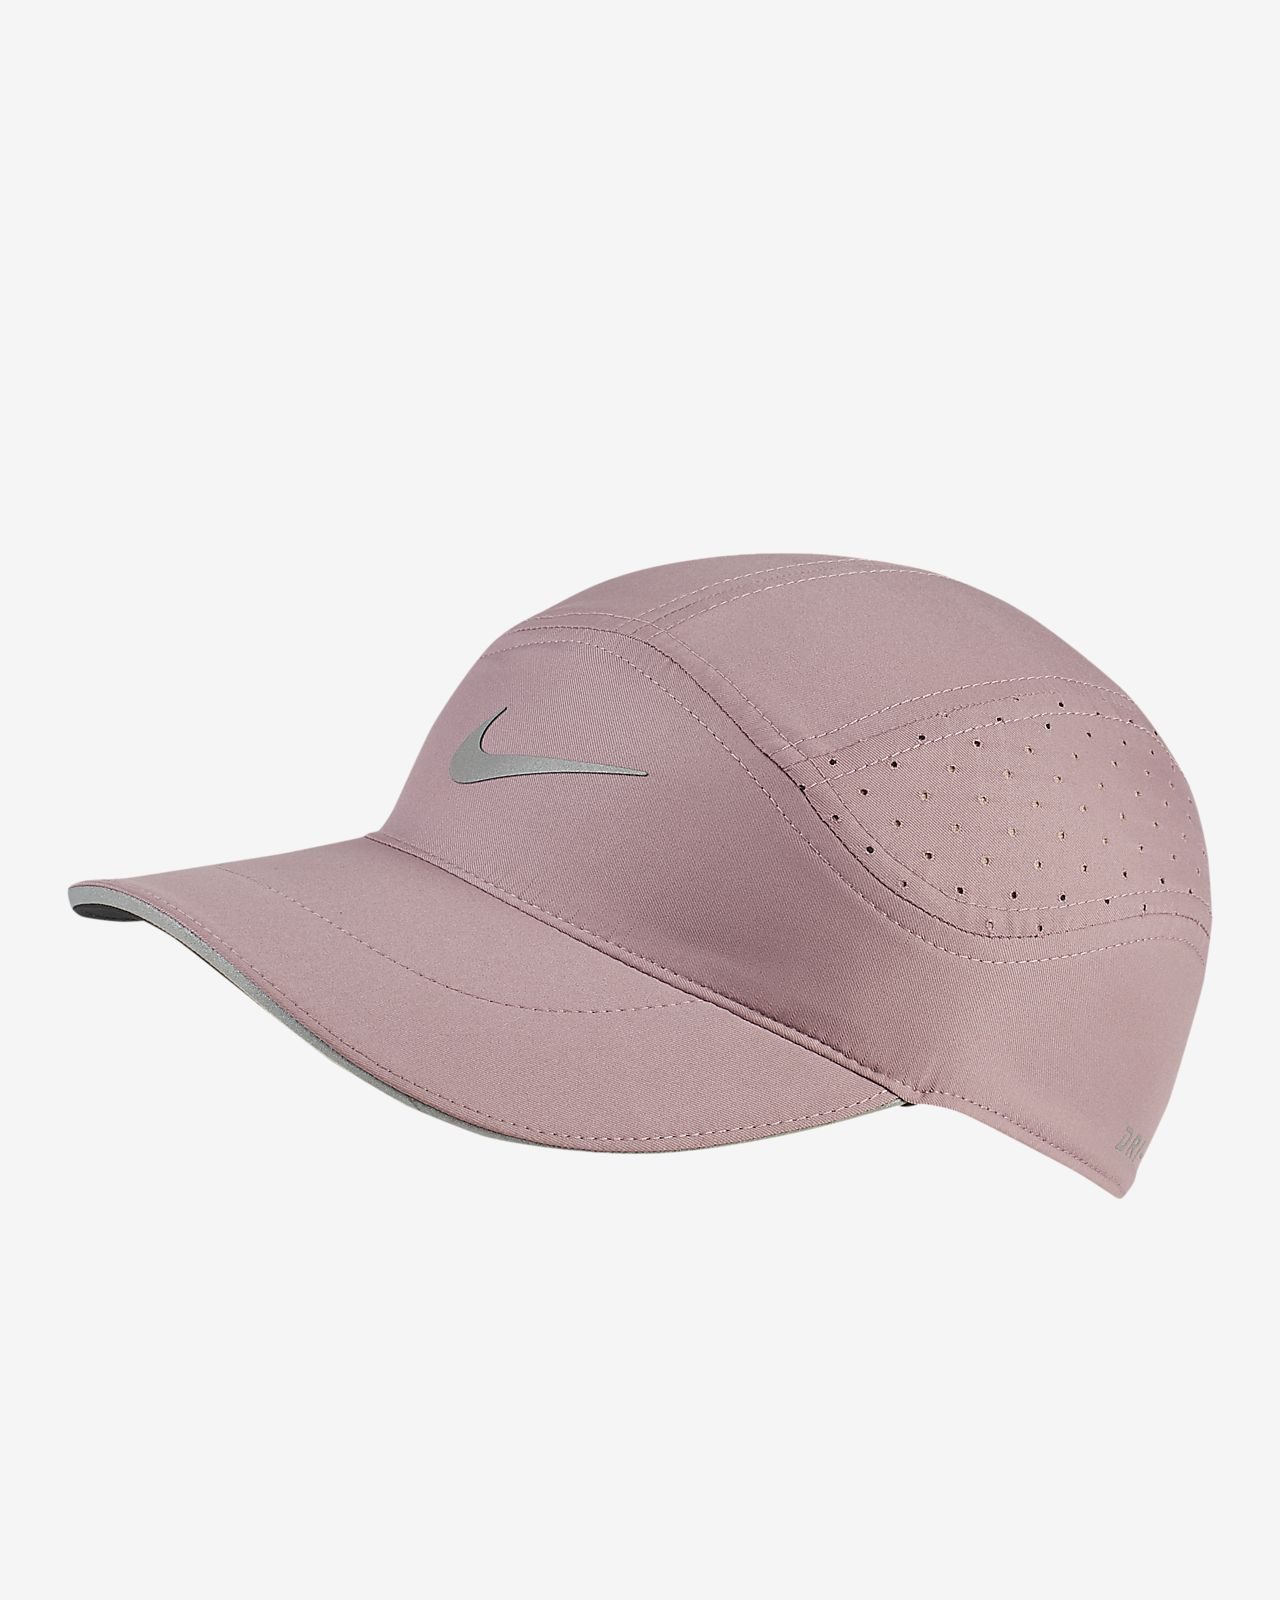 8b5f976c995 Nike AeroBill Women s Adjustable Running Hat. Nike.com